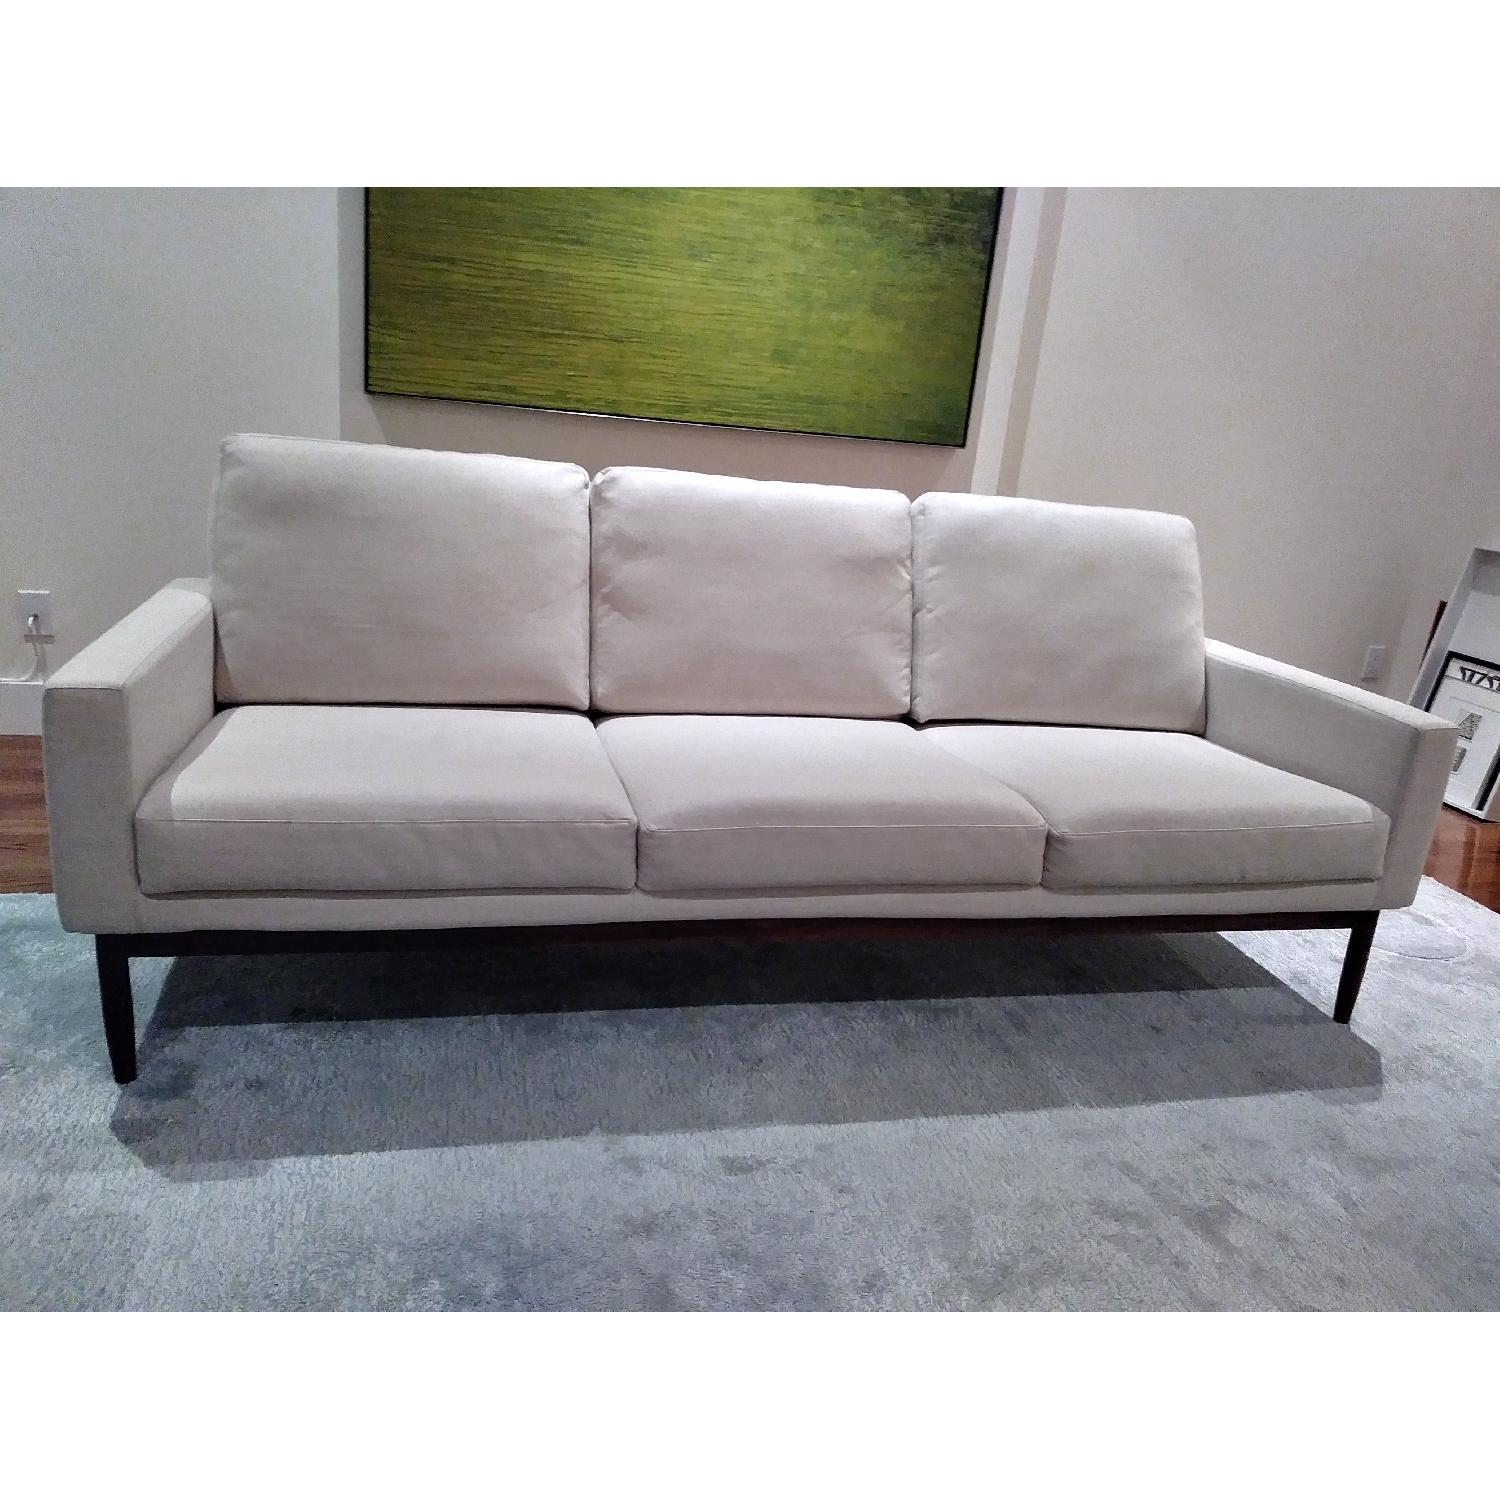 Dwr Raleigh Sofa Review Visitfoothills